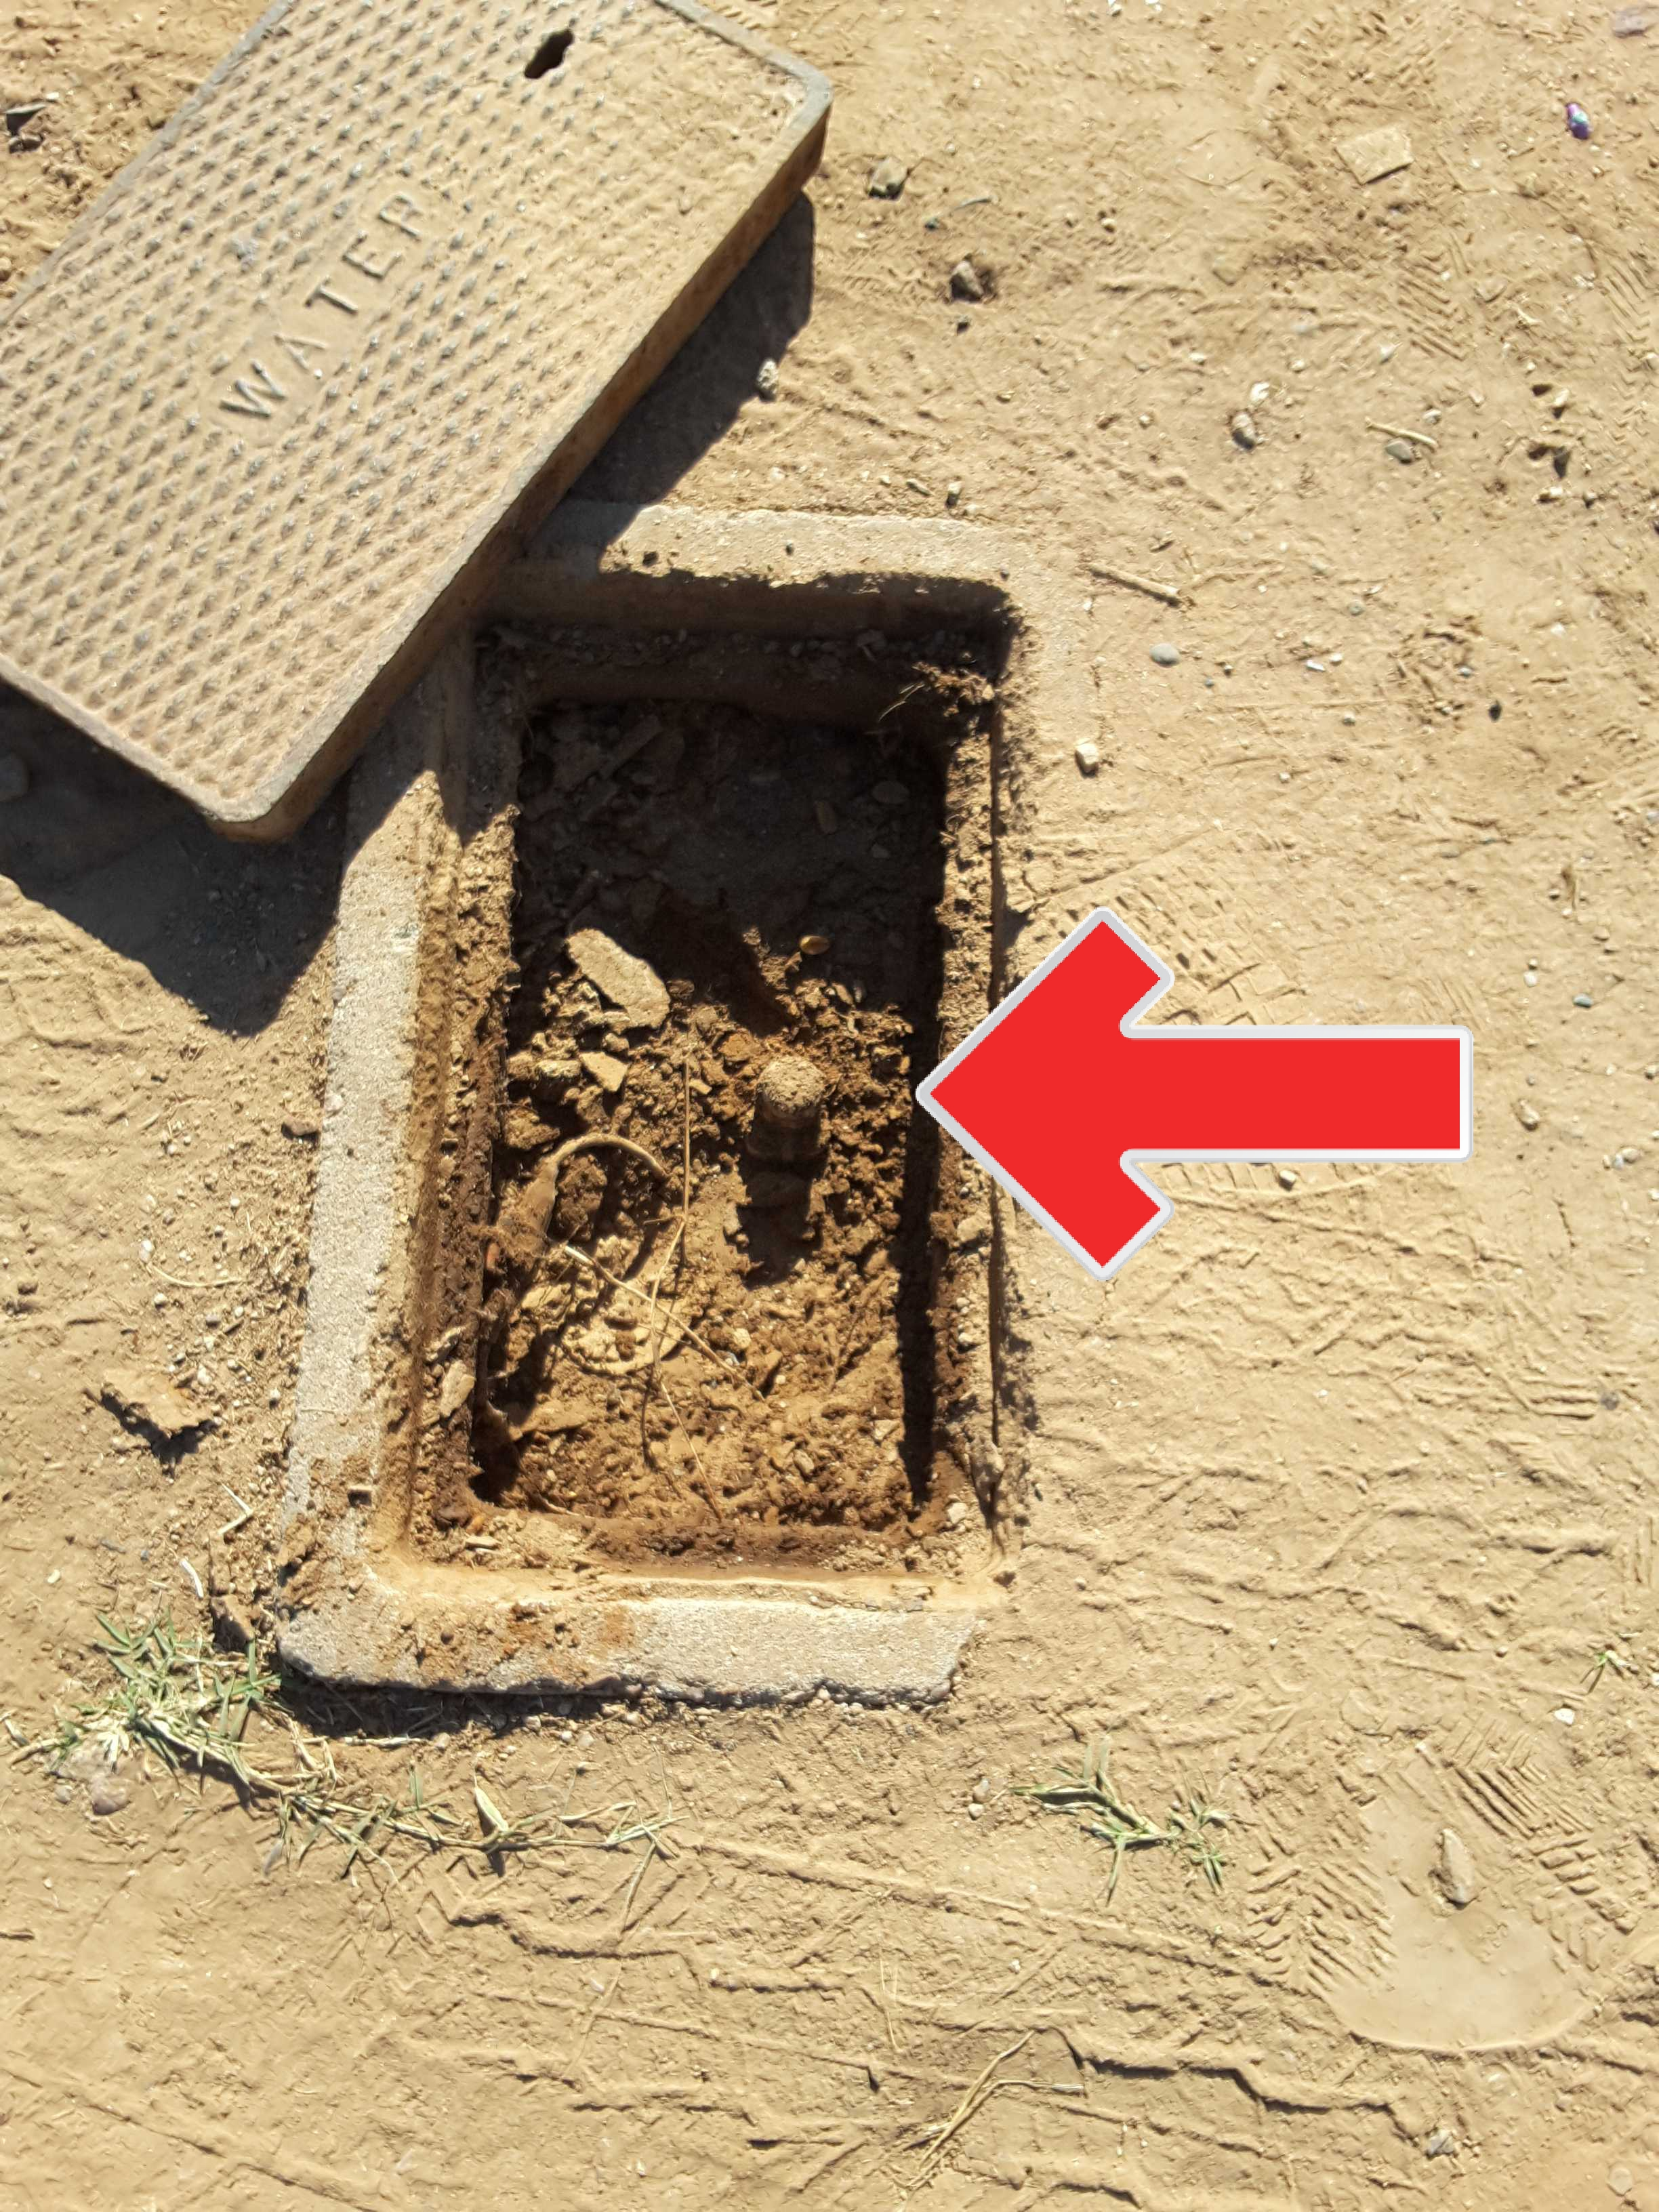 A water meter completely buried in soil is an indication of past leaking. Further evaluation by a qualified plumber is recommended.